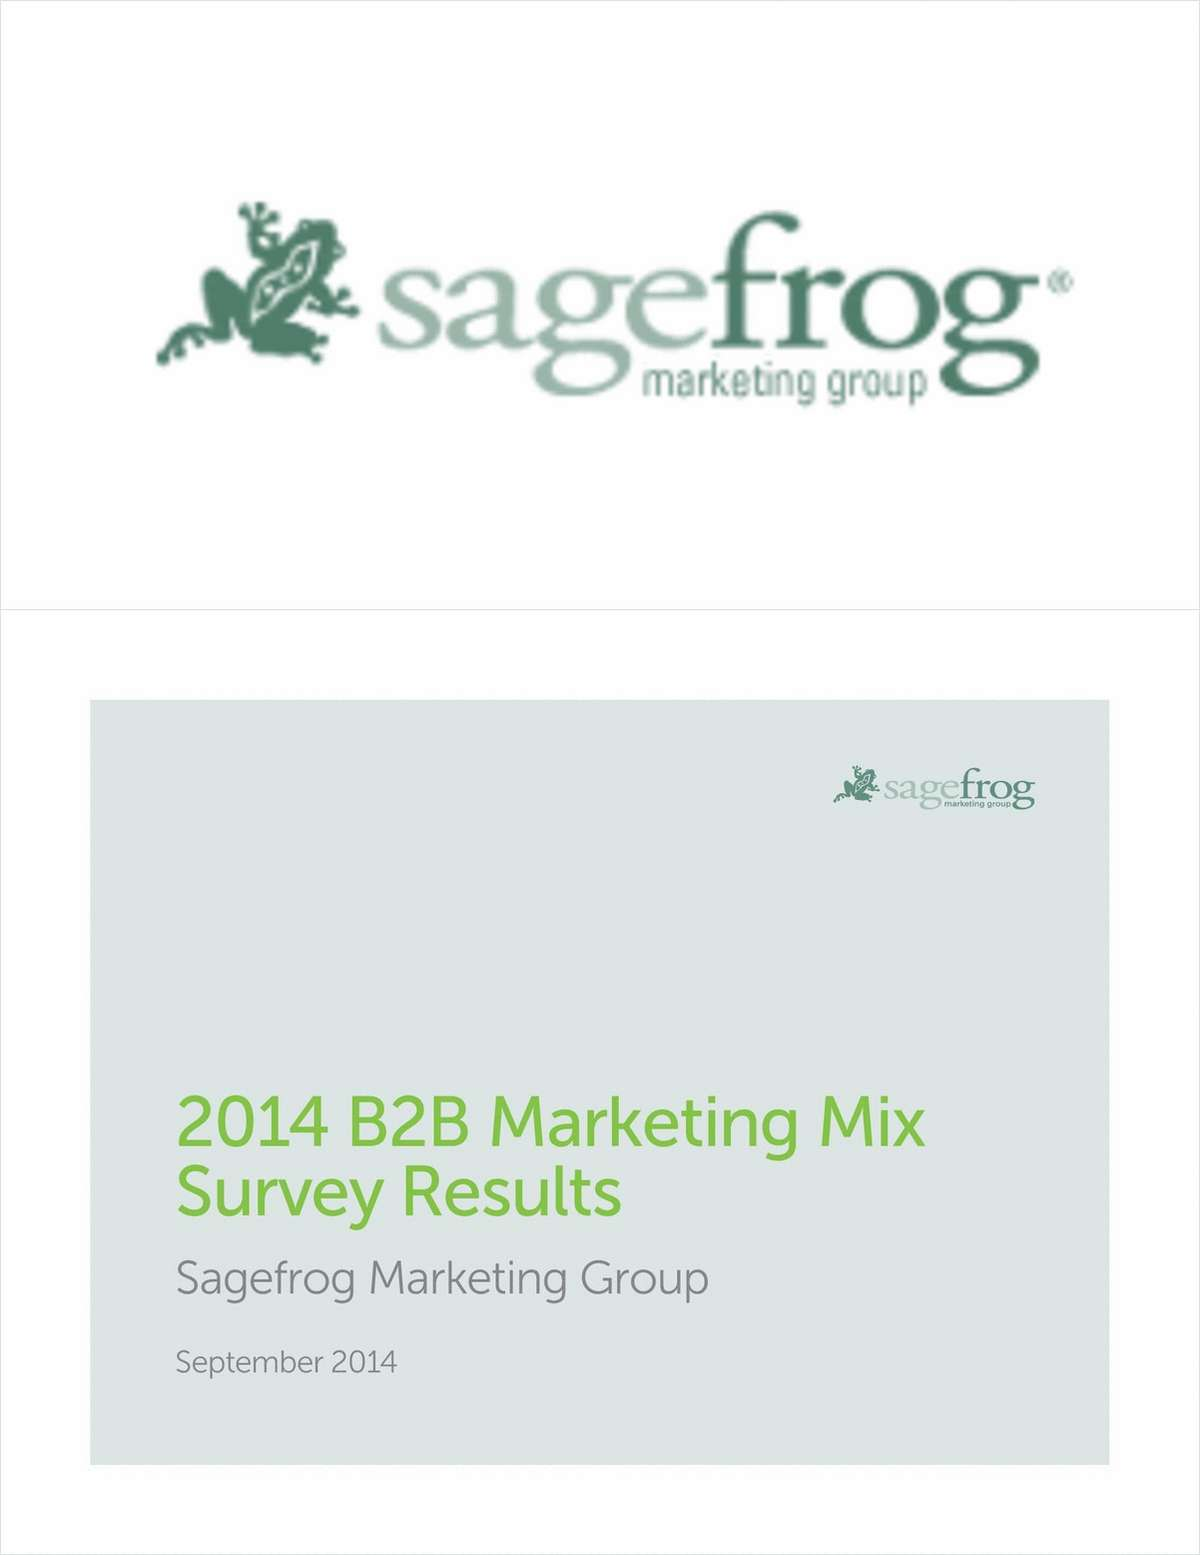 2014 B2B Marketing Mix Survey Results